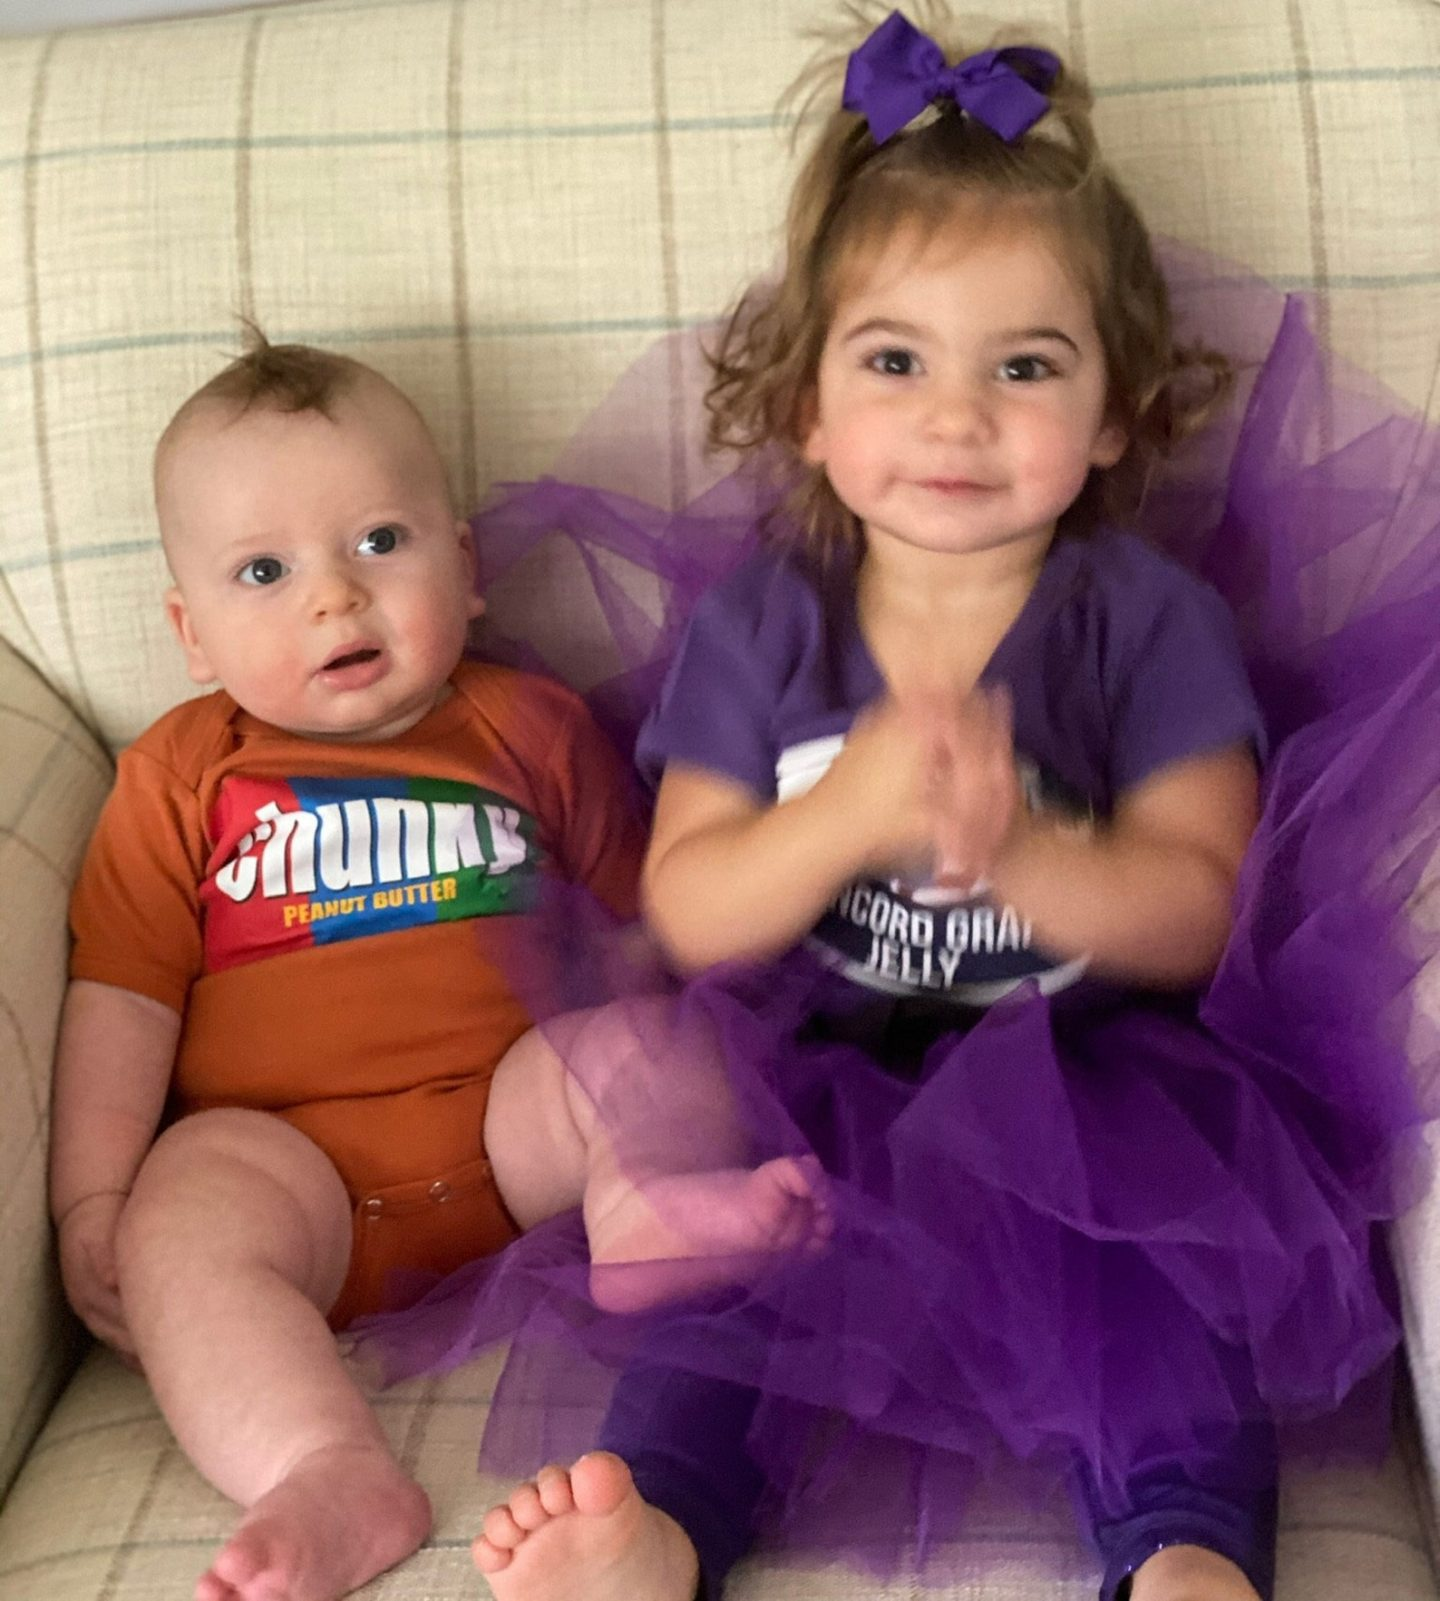 Cute peanut butter and jelly costumes for siblings